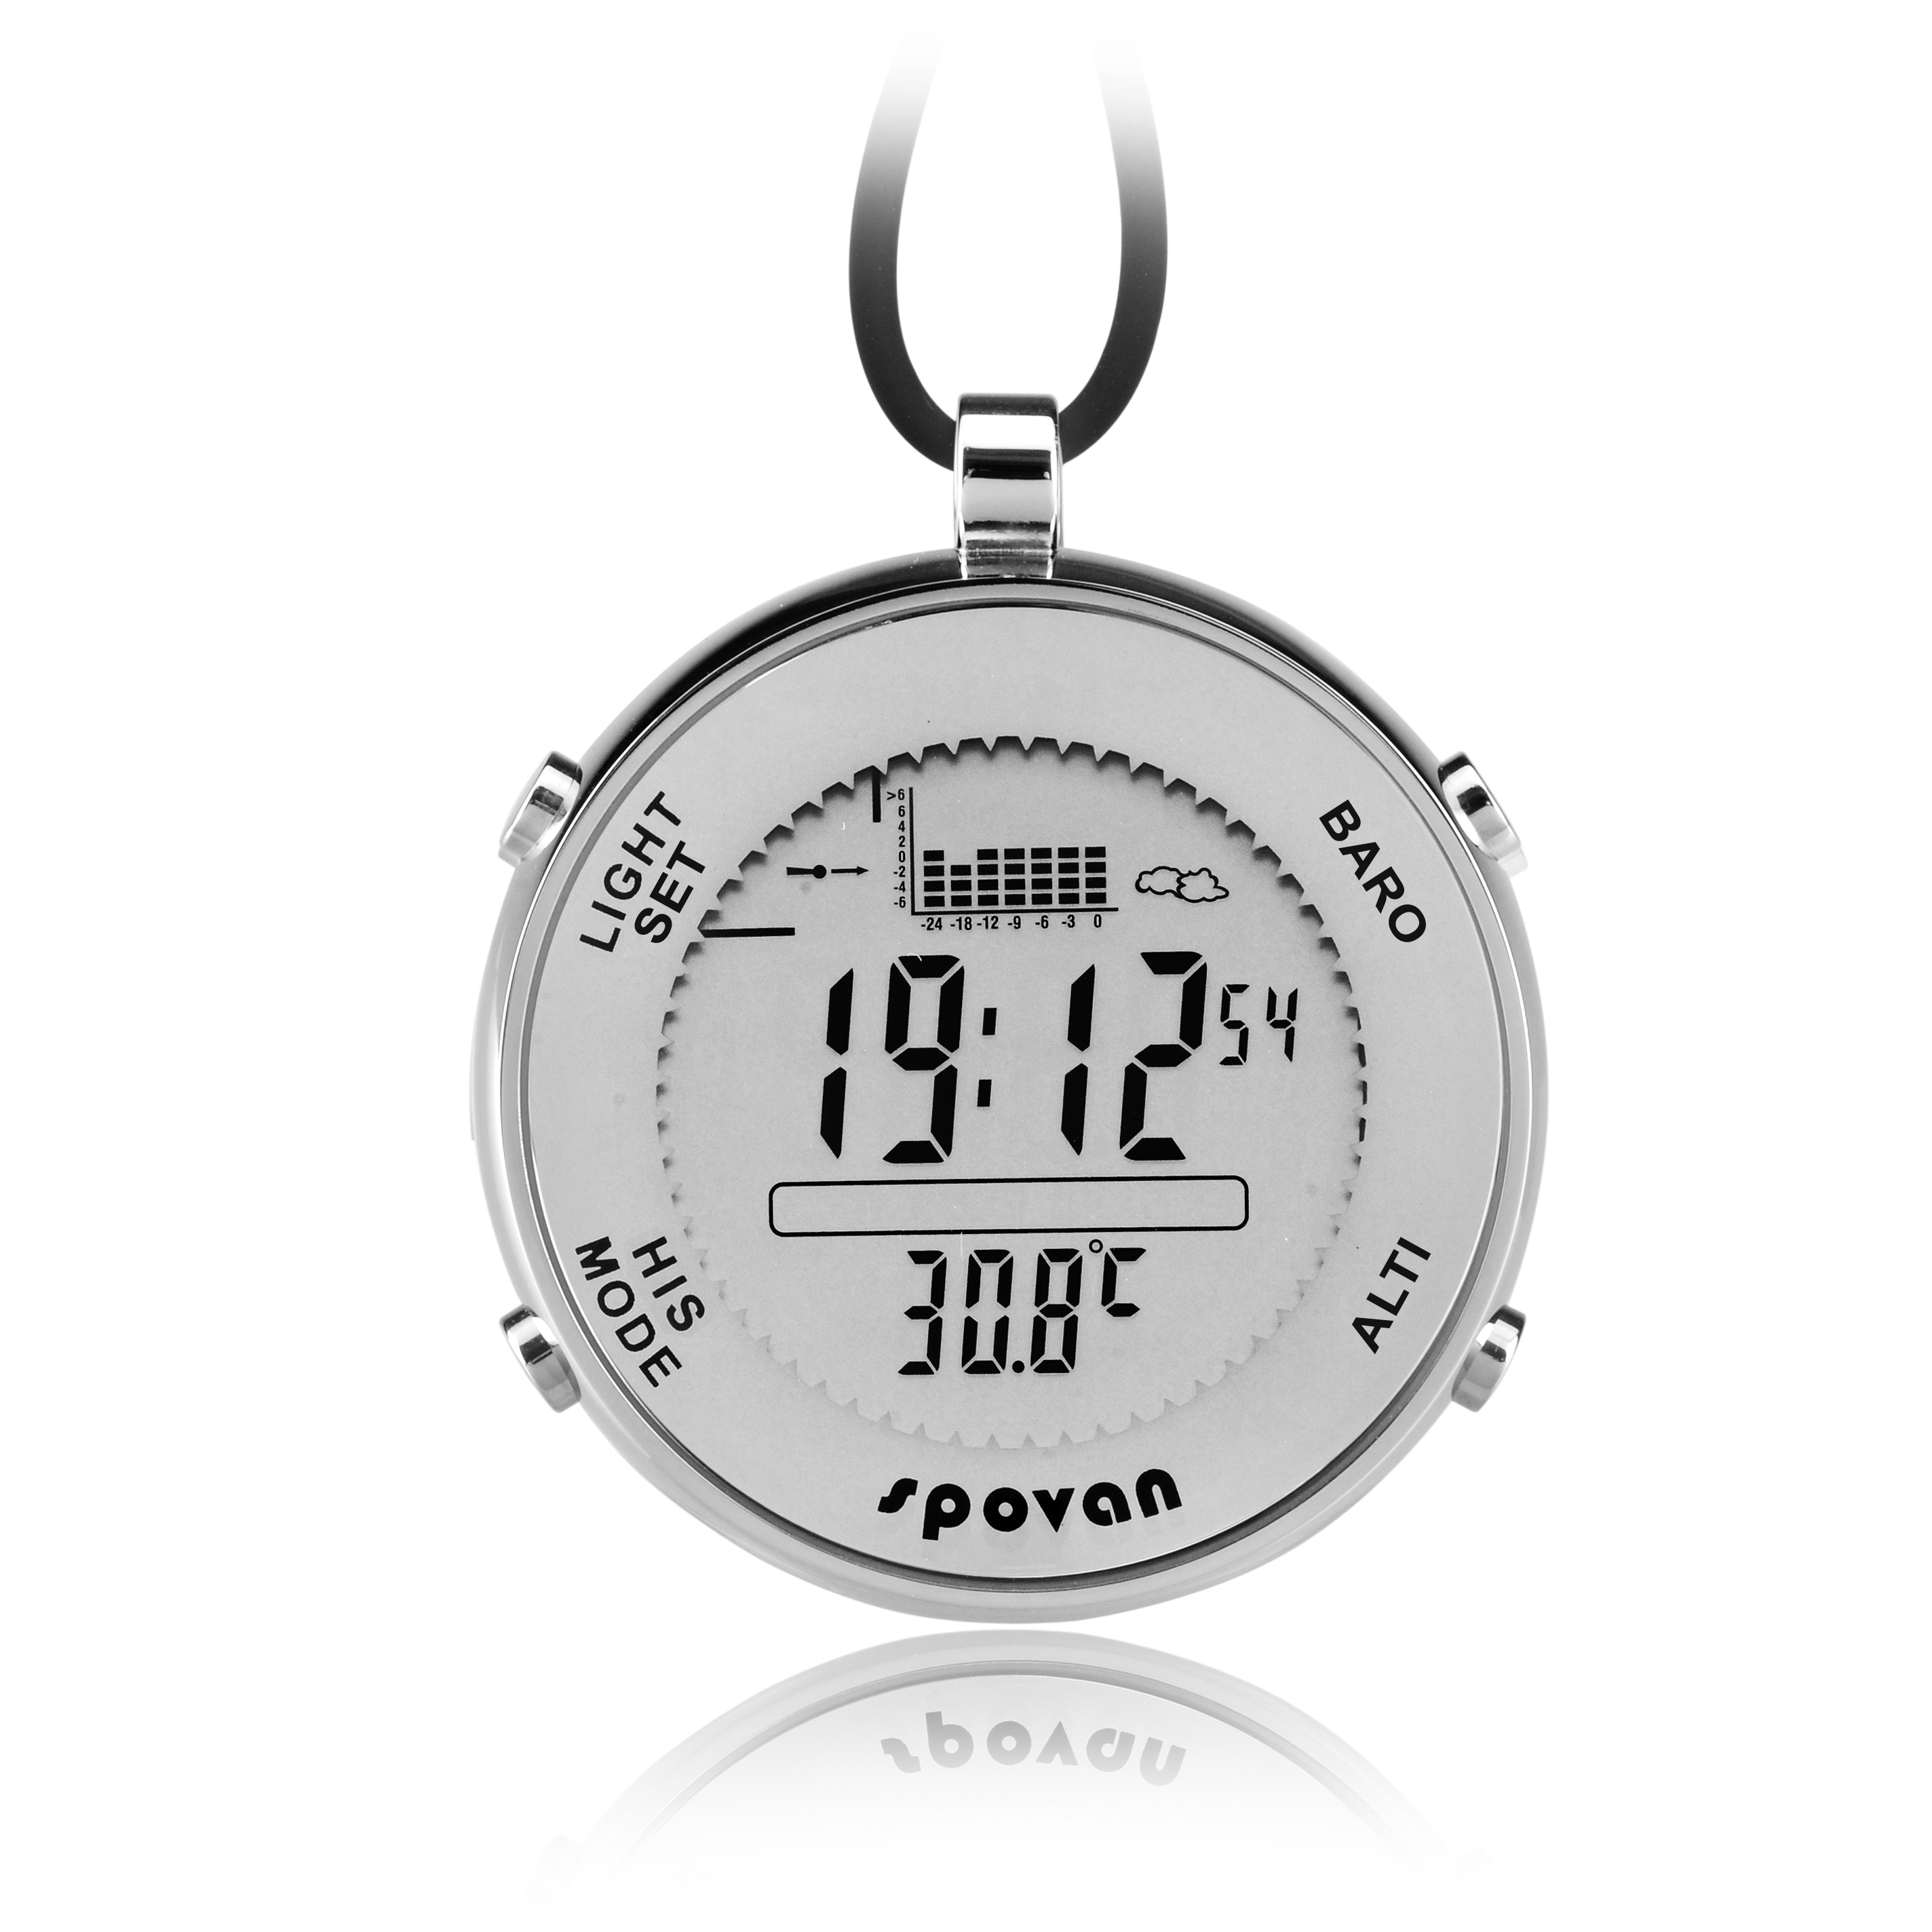 Spovan SPV600 Pocket Size Mini Waterproof Swit Sensor Digital Track Fishing Barometer Altimeter Thermometer Multifunction Watch outdoor multifunction digital fishing barometer waterproof fishing watch barometer altimeter thermometer sports watch 6 colors